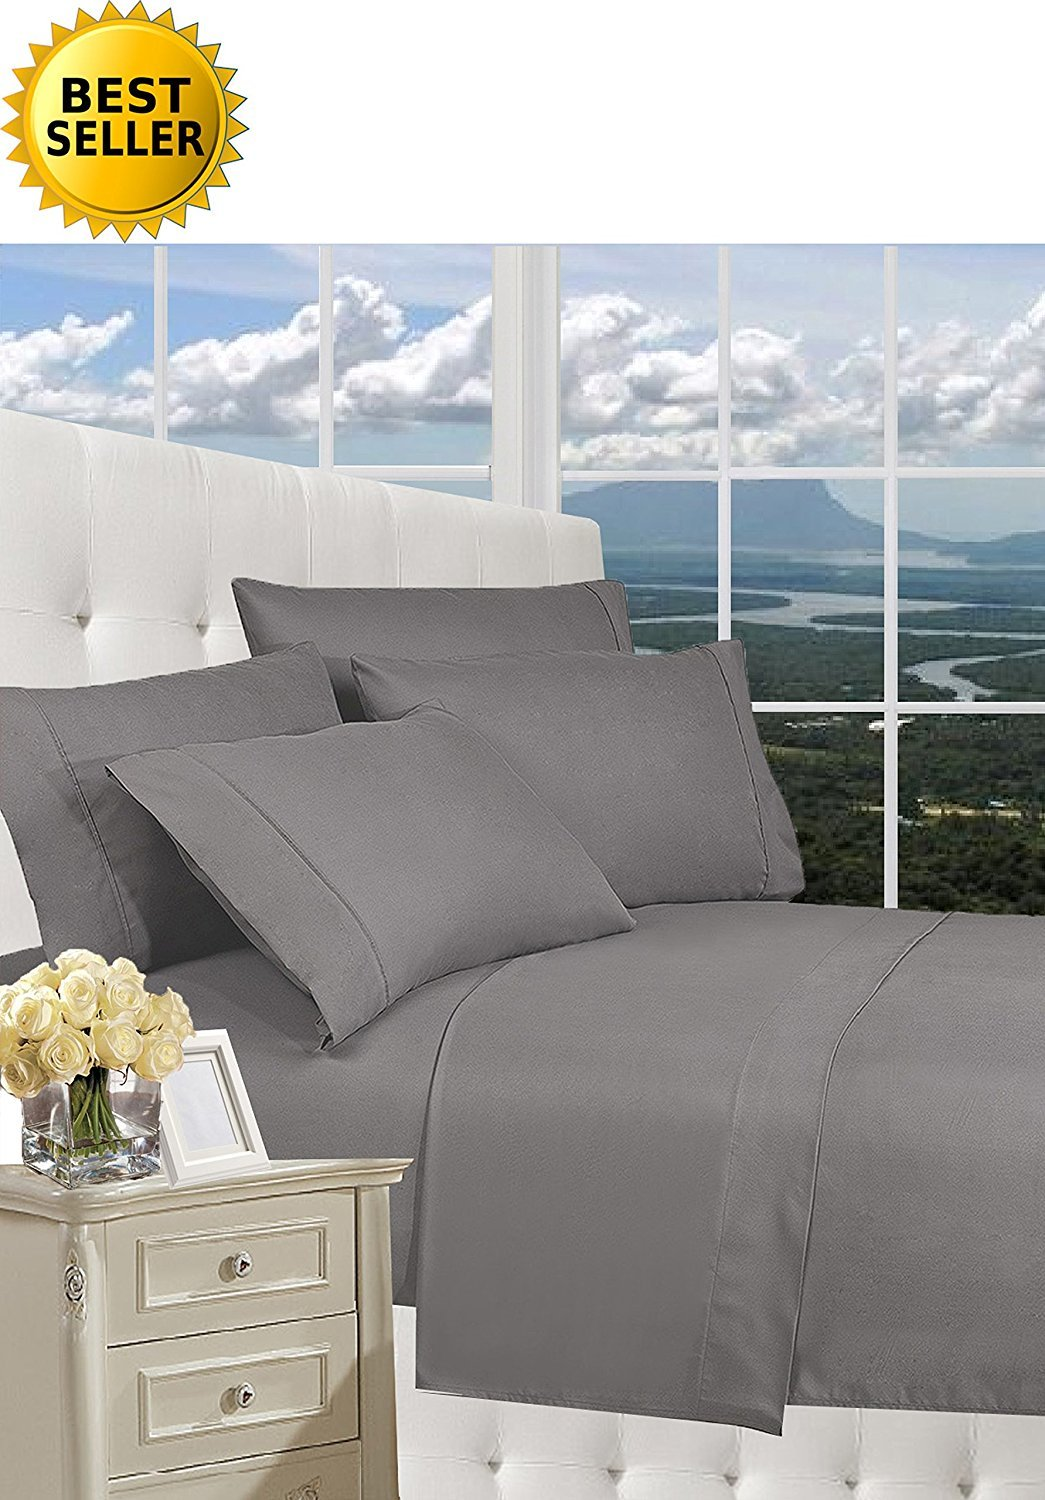 1500 Thread Count QUEEN Size 4pc Egyptian Bed Sheet Set, Deep Pocket, GRAY